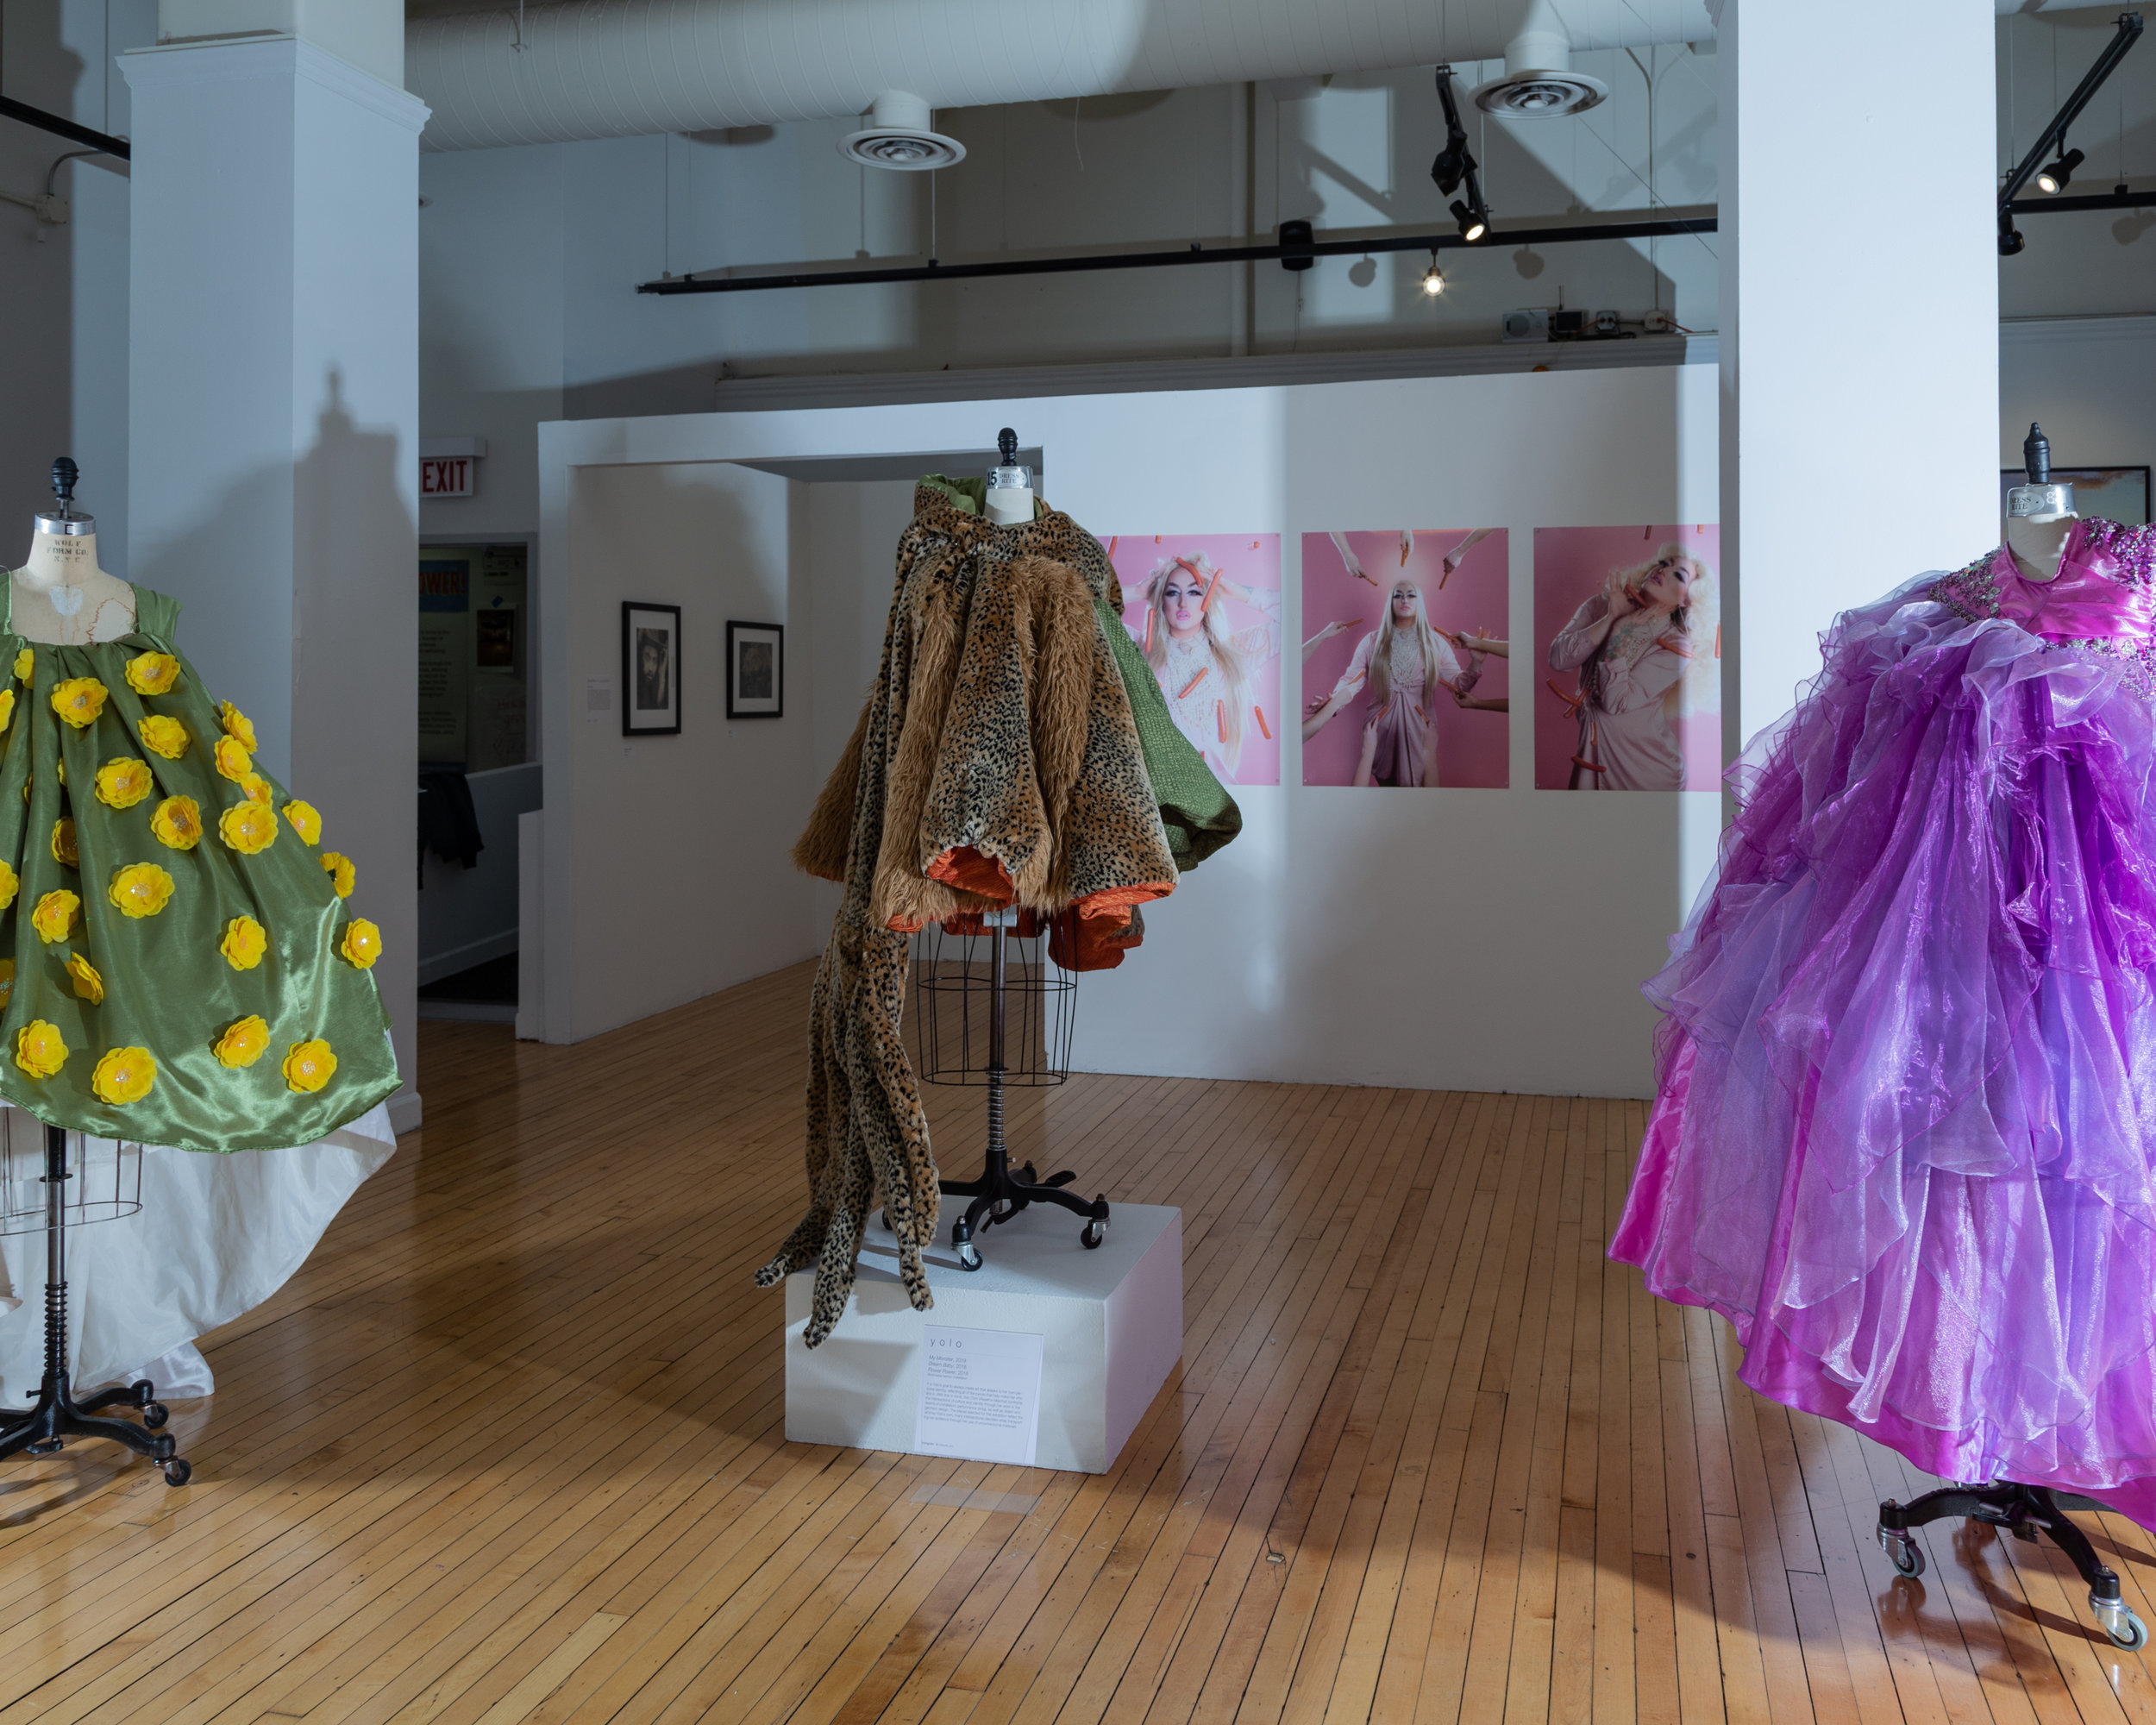 Foreground: Dresses by Yolo Ono. Background: Honey Dijon shot by Alex Wallbaum. Hokin Gallery, Chicago IL. March 2019.